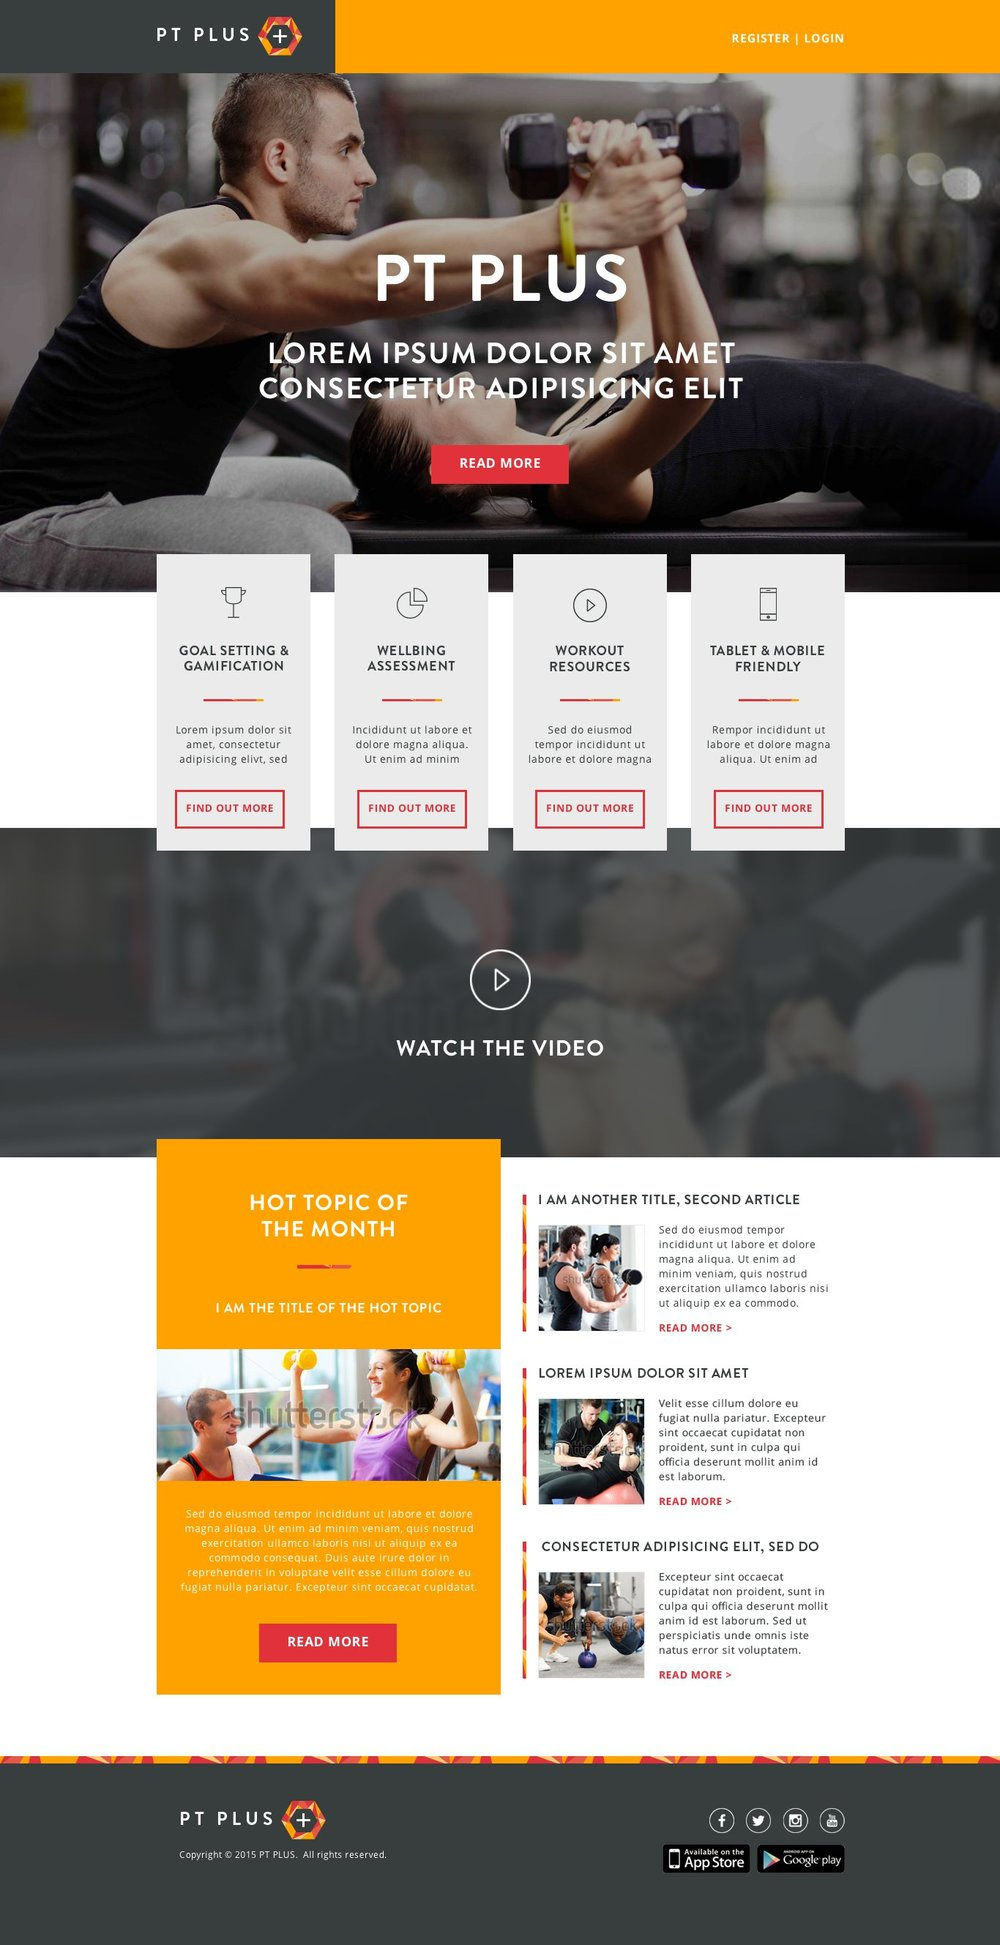 PT PLUS website theme